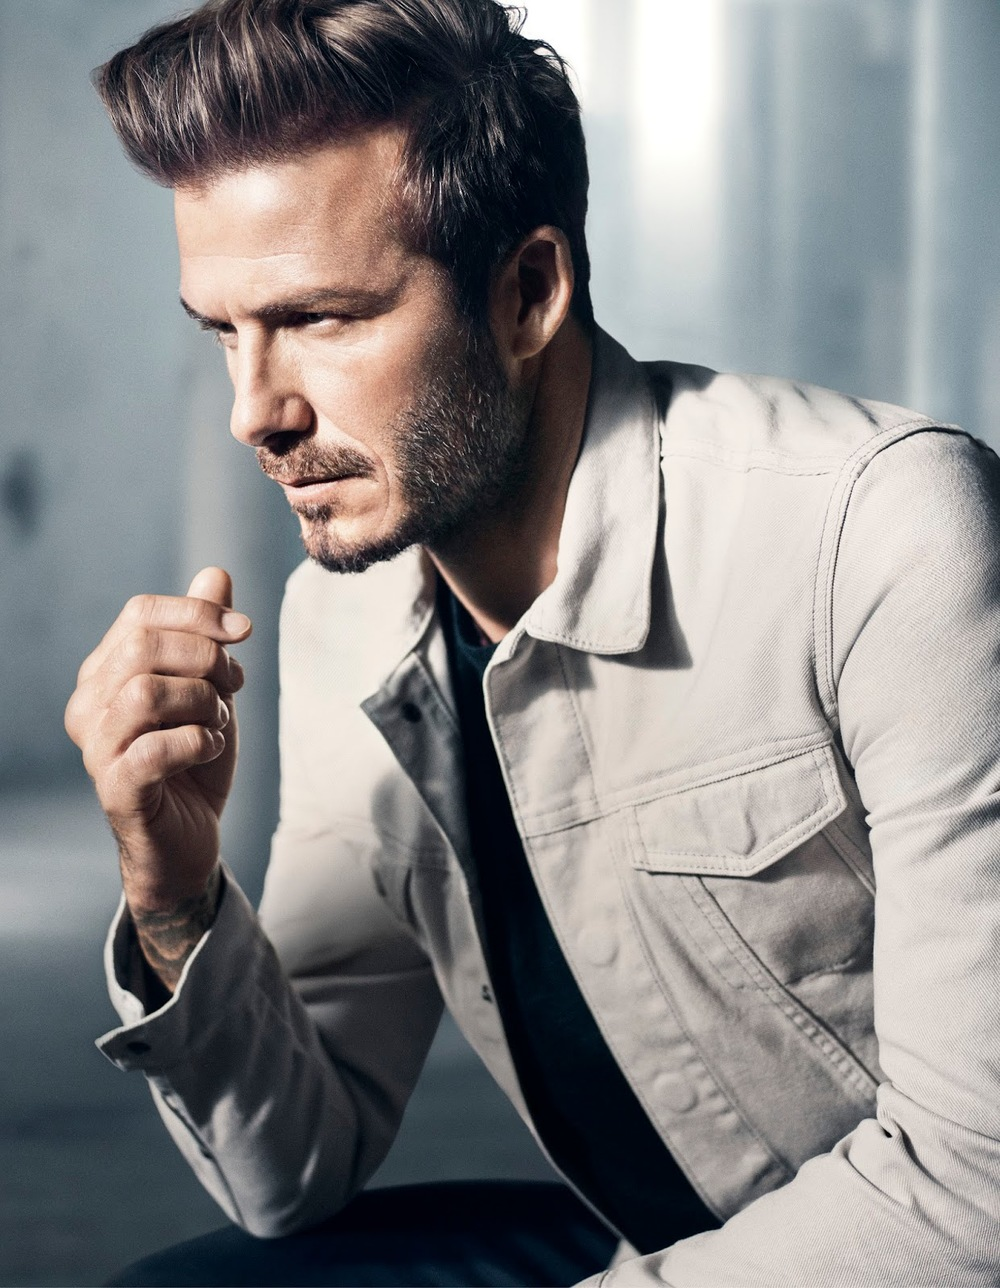 hm-davidbeckham-collection.jpg